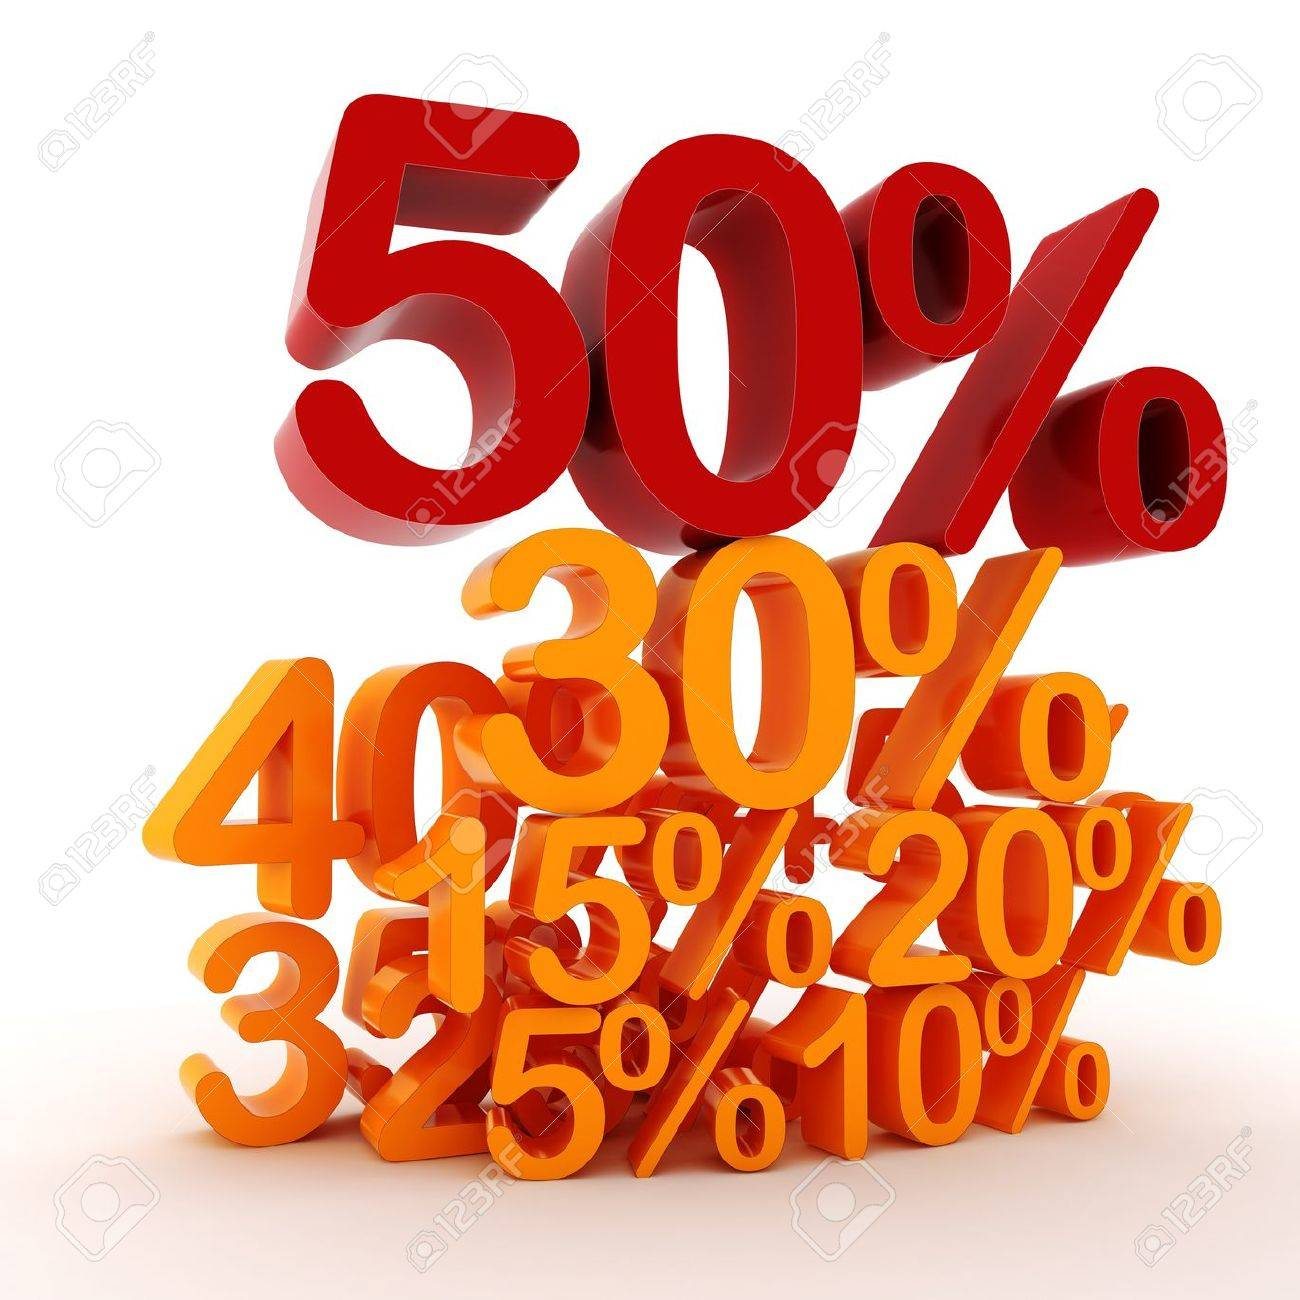 49,528 Percentages Cliparts, Stock Vector And Royalty Free ...